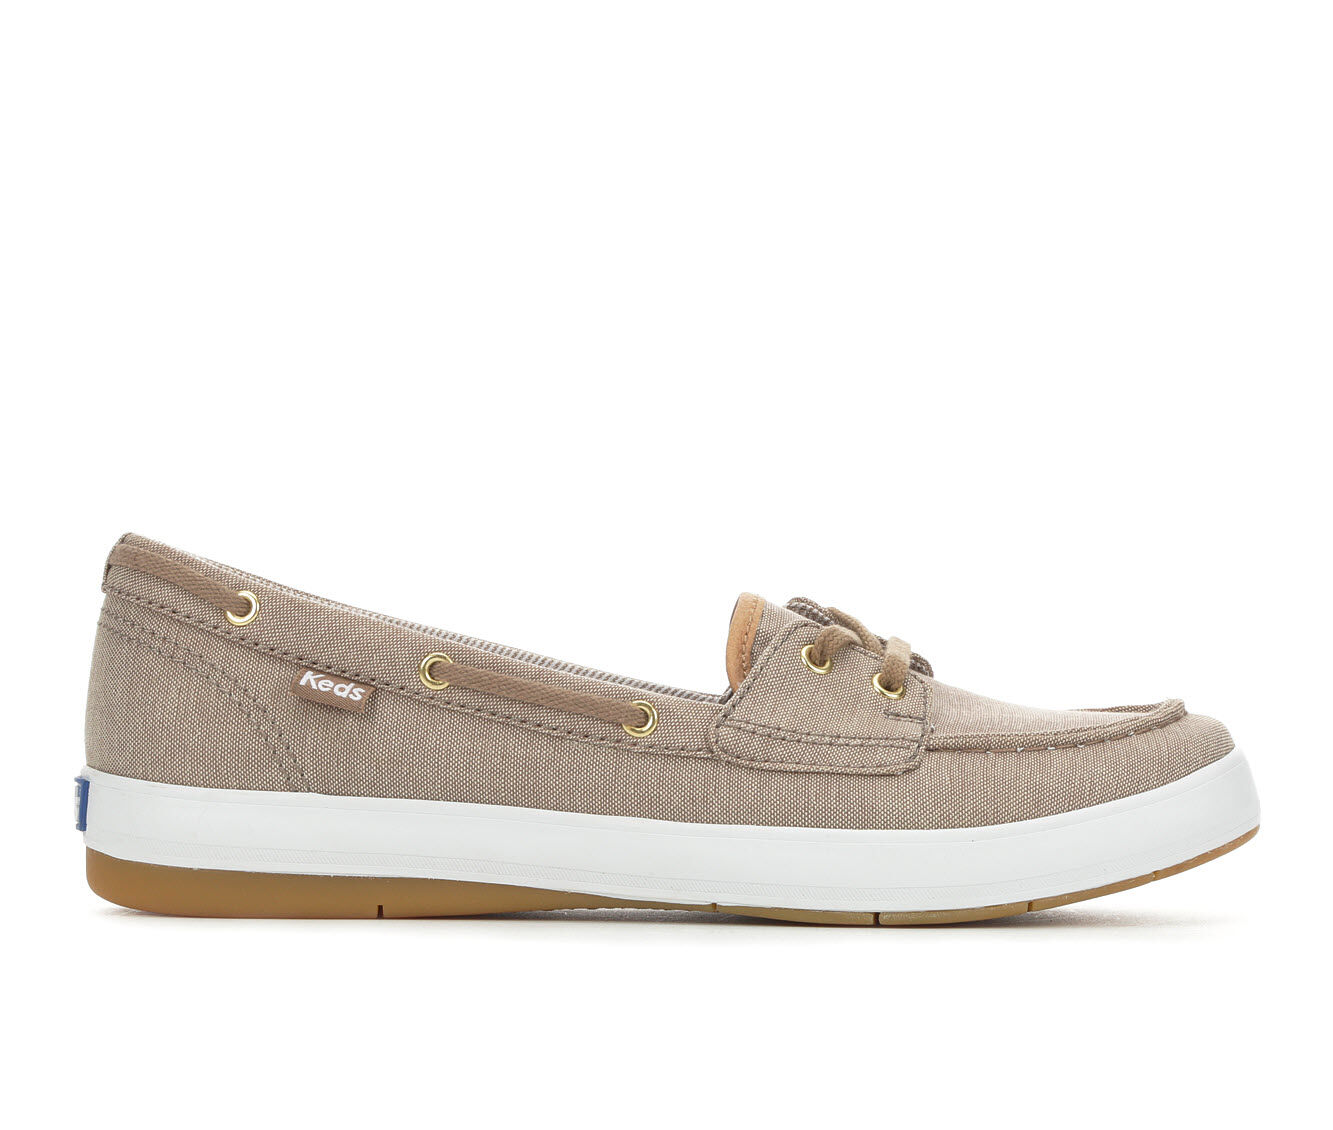 Women's Keds Charter Chambray Slip-On Shoes Walnut